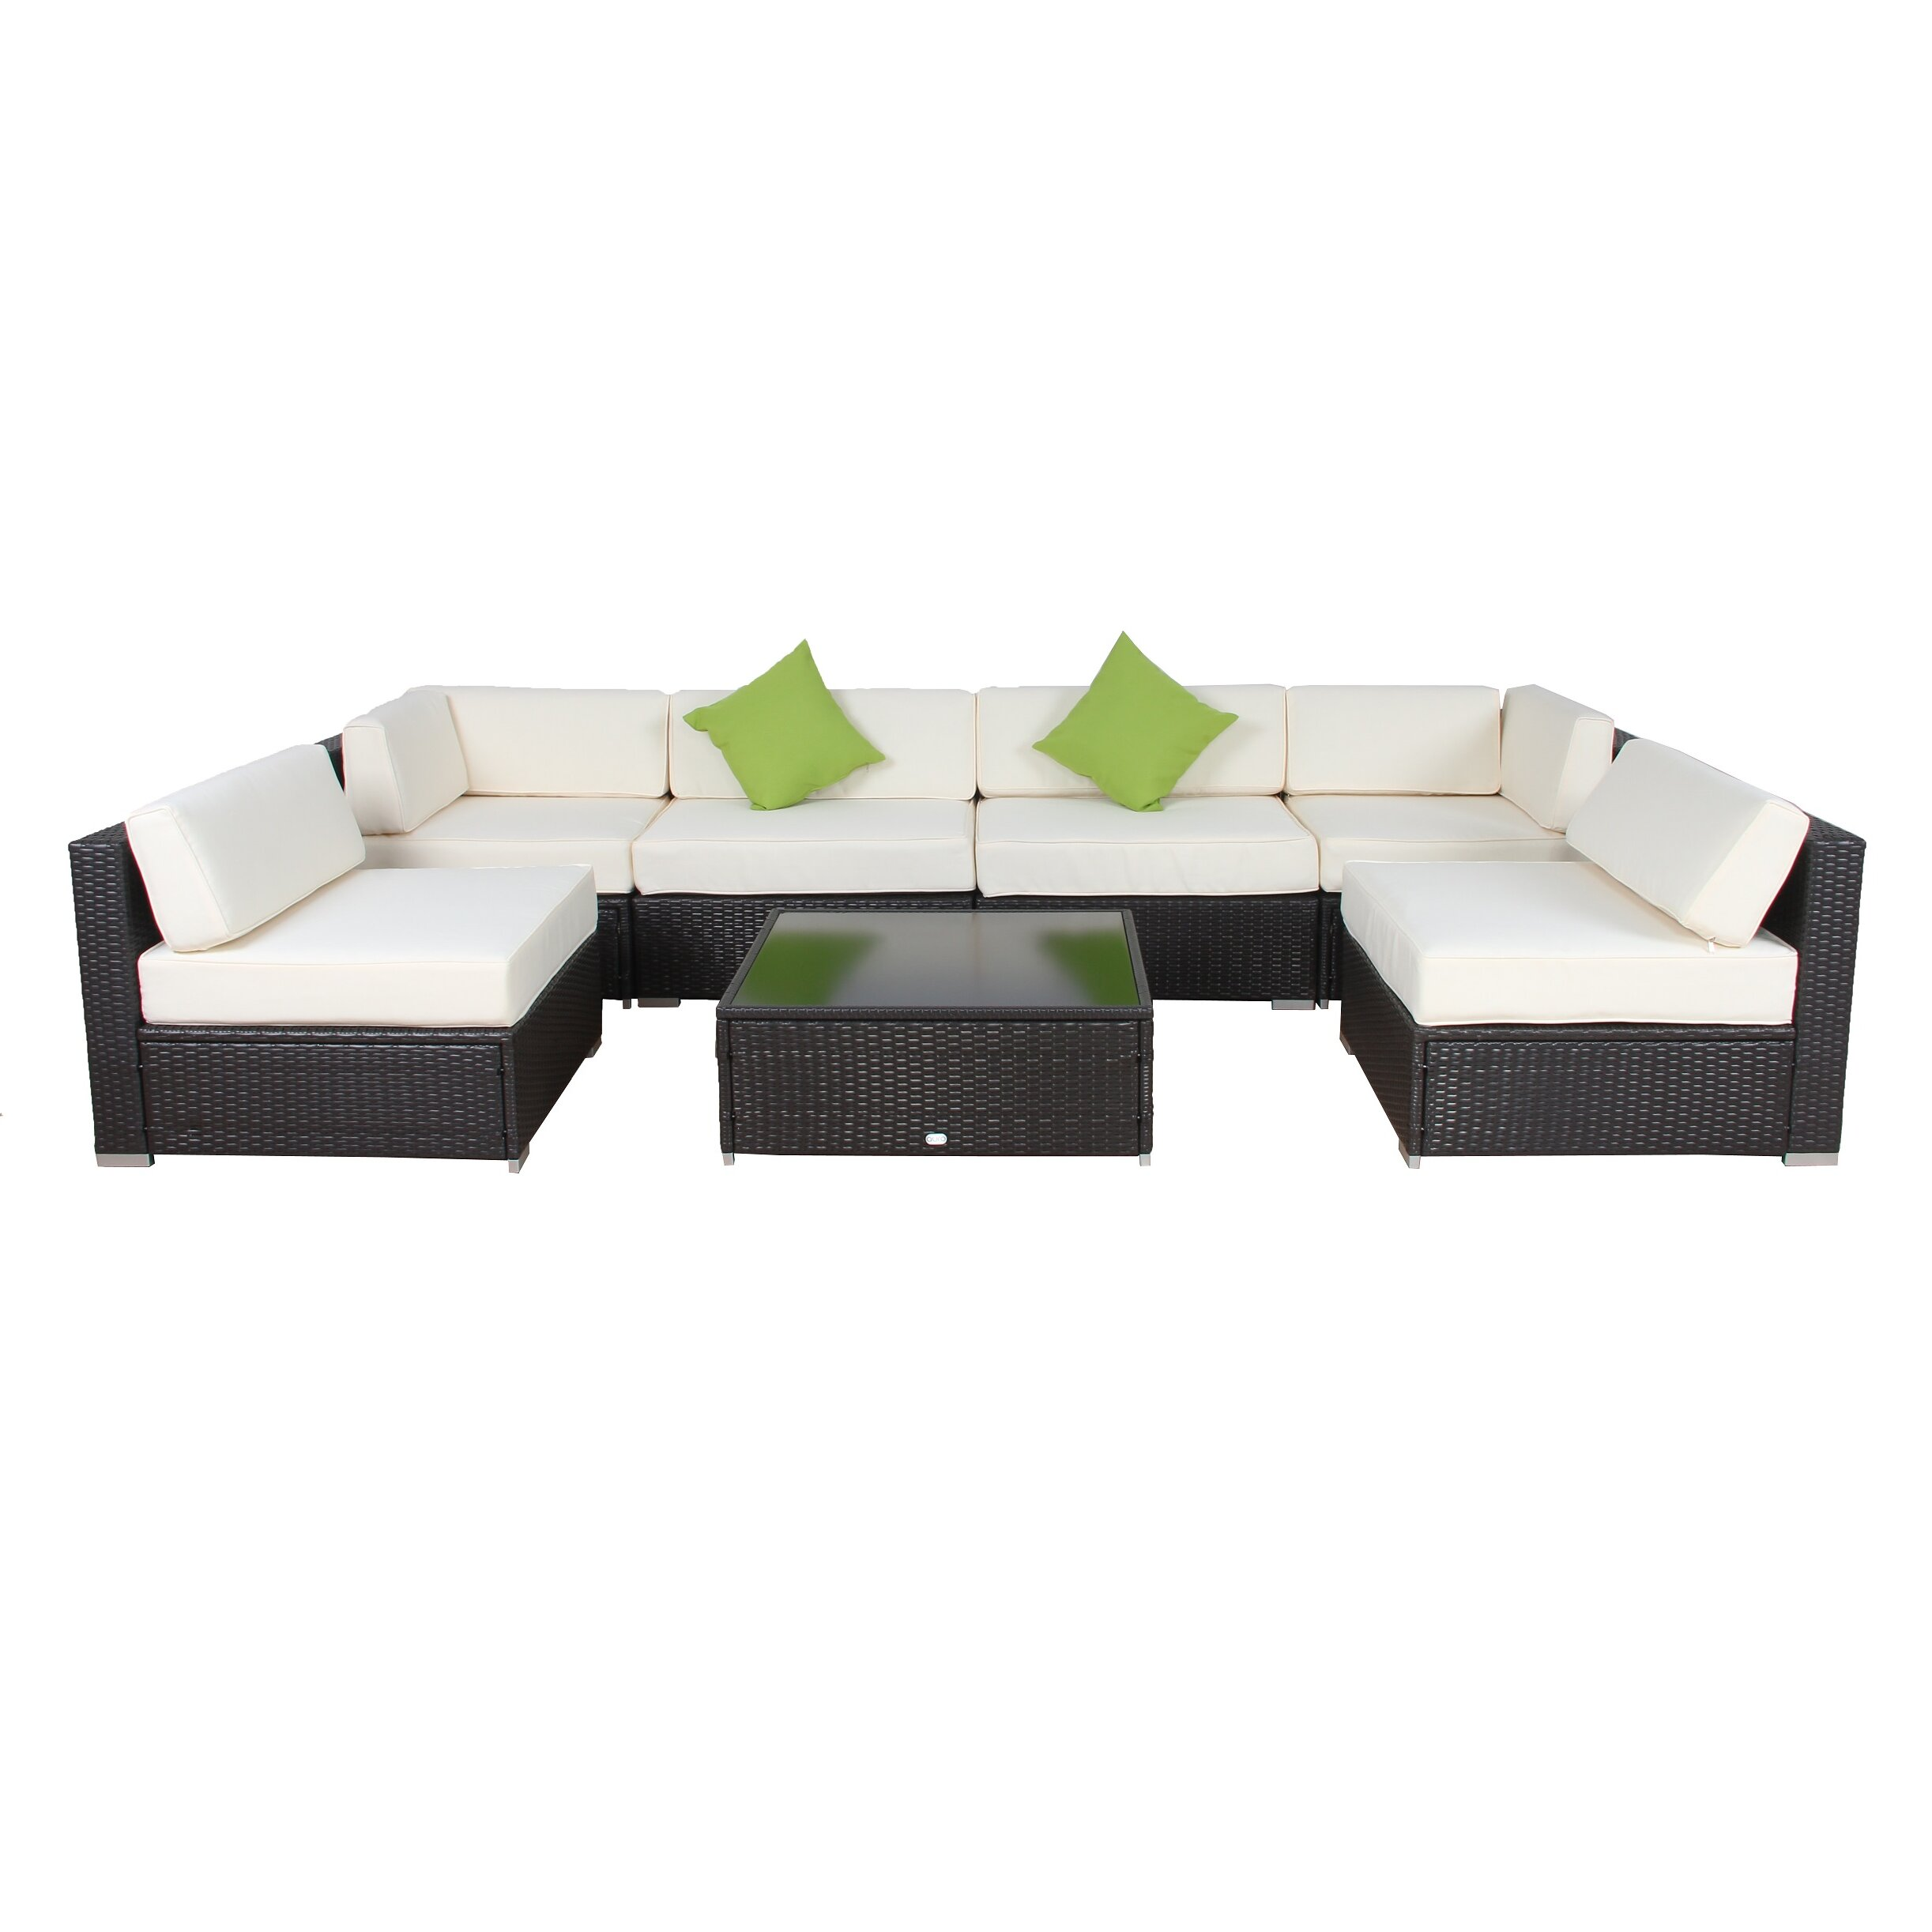 aurofurniture 7 piece deep seating group with cushion